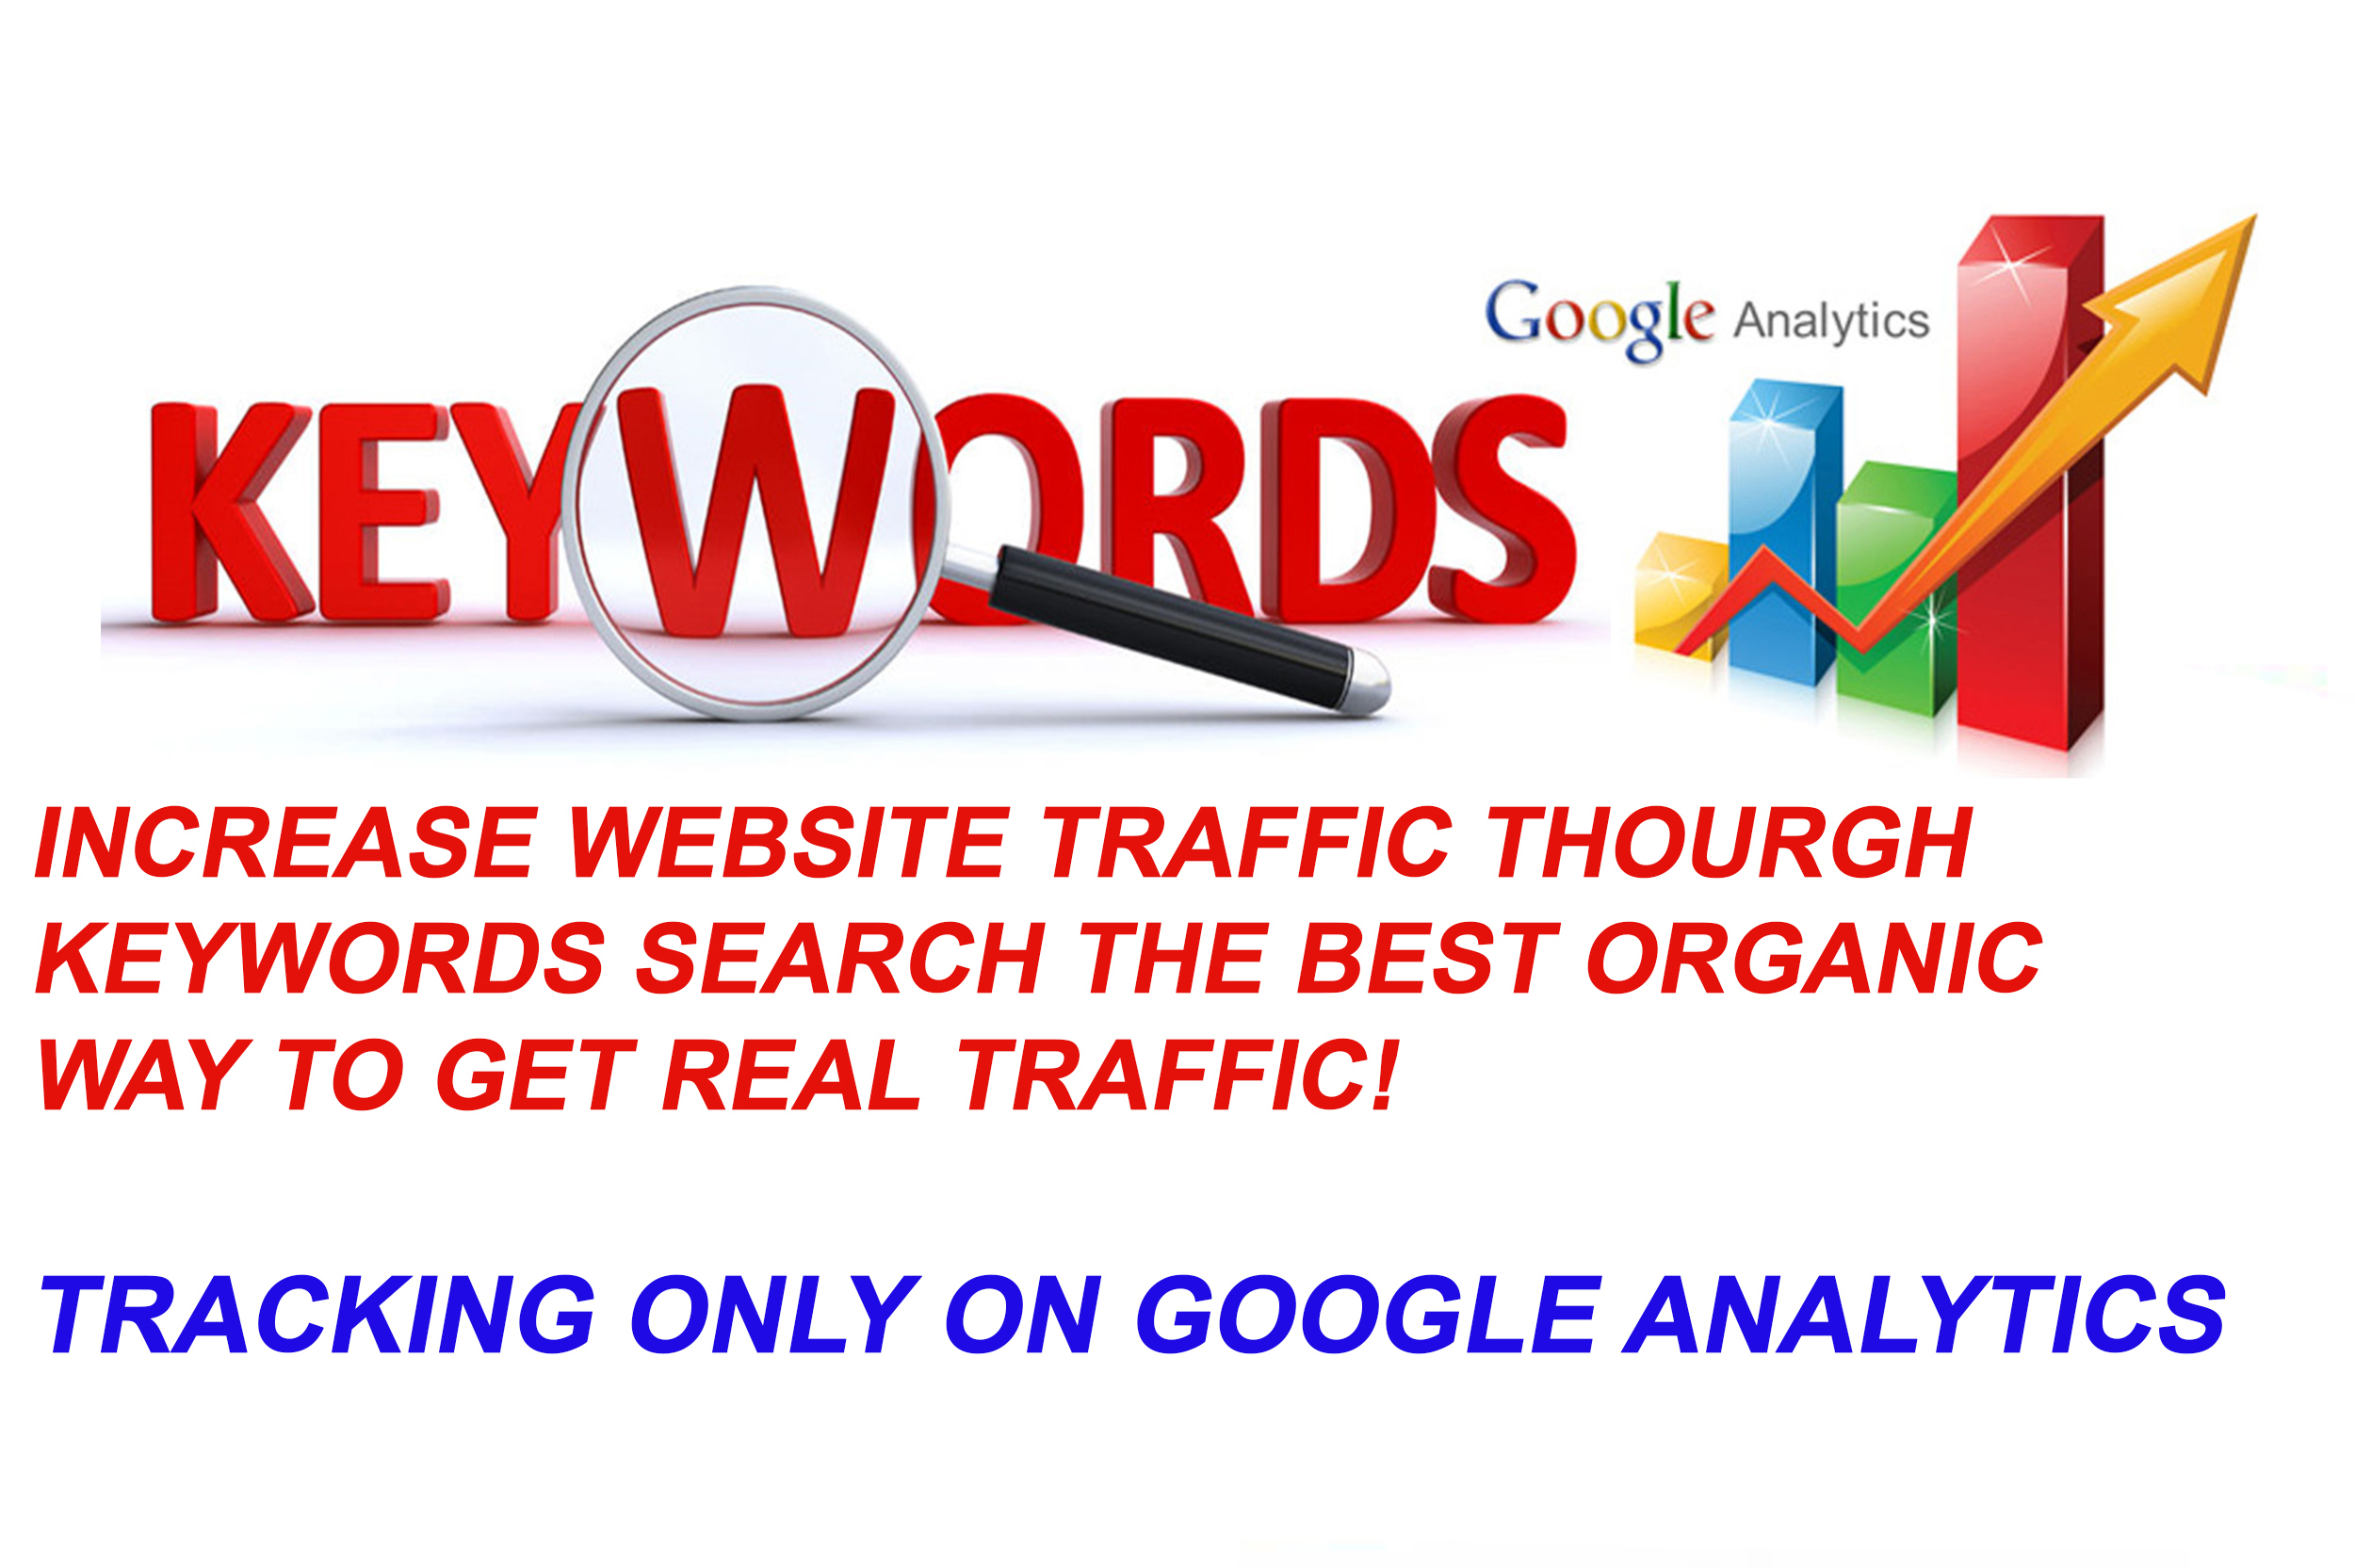 Give YouUnlimited KEYWORD TARGETED Google Organic Traffic with Low Bounce Rate